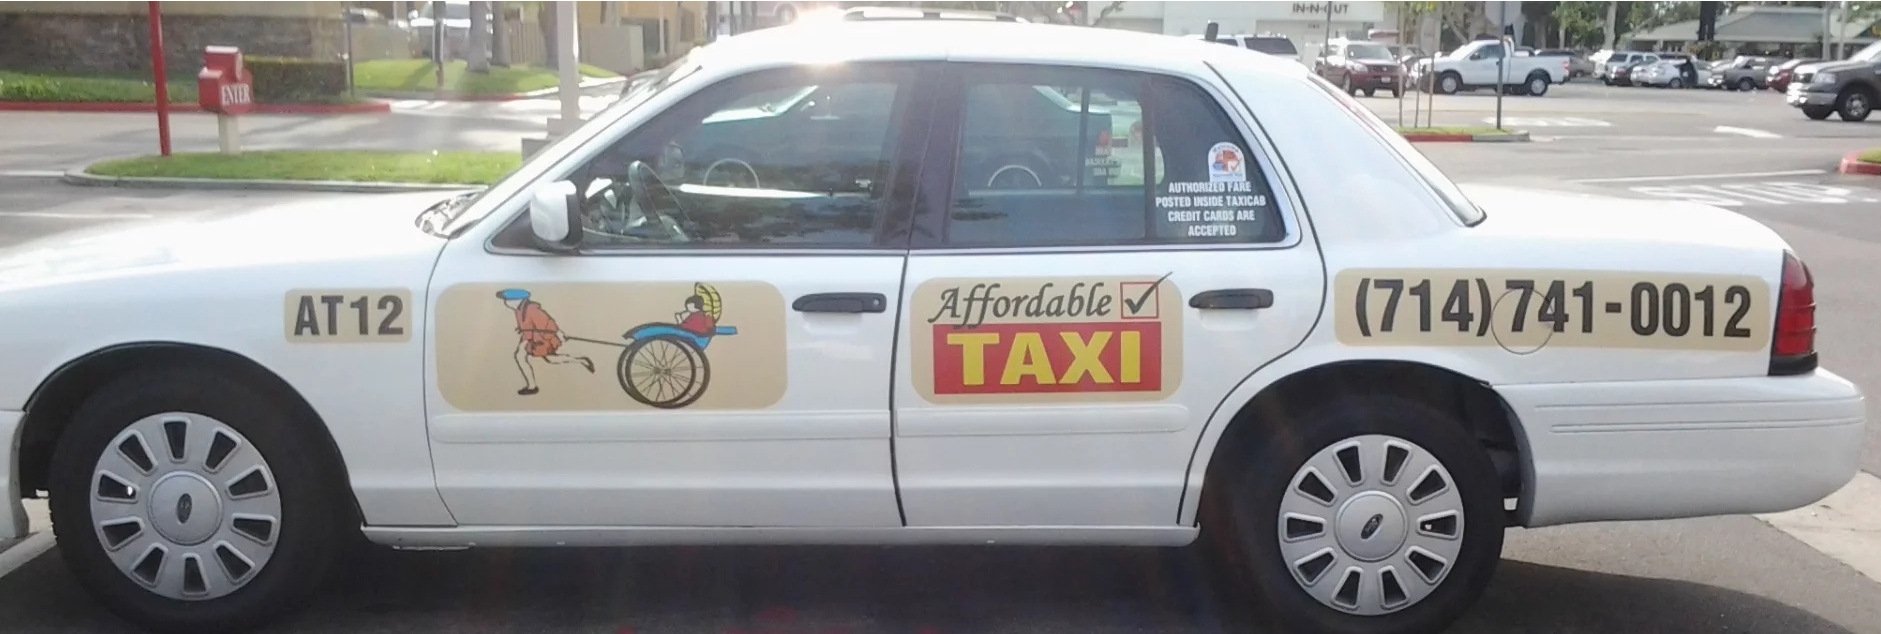 Affordable Taxi